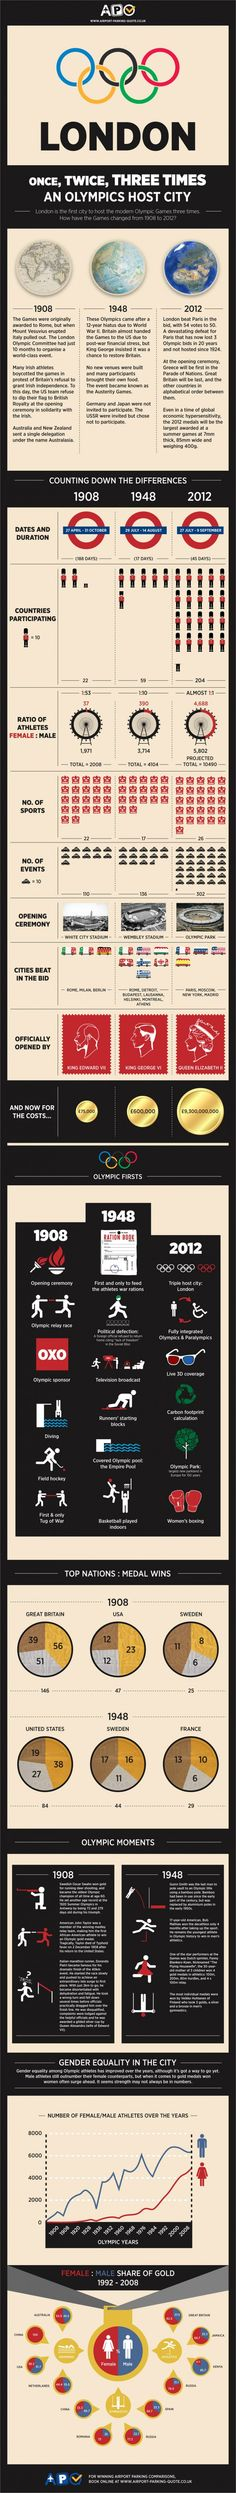 Awesome #Infographic about #London Olympic Games - how did the Games change between 1908, 1948 and 2012?